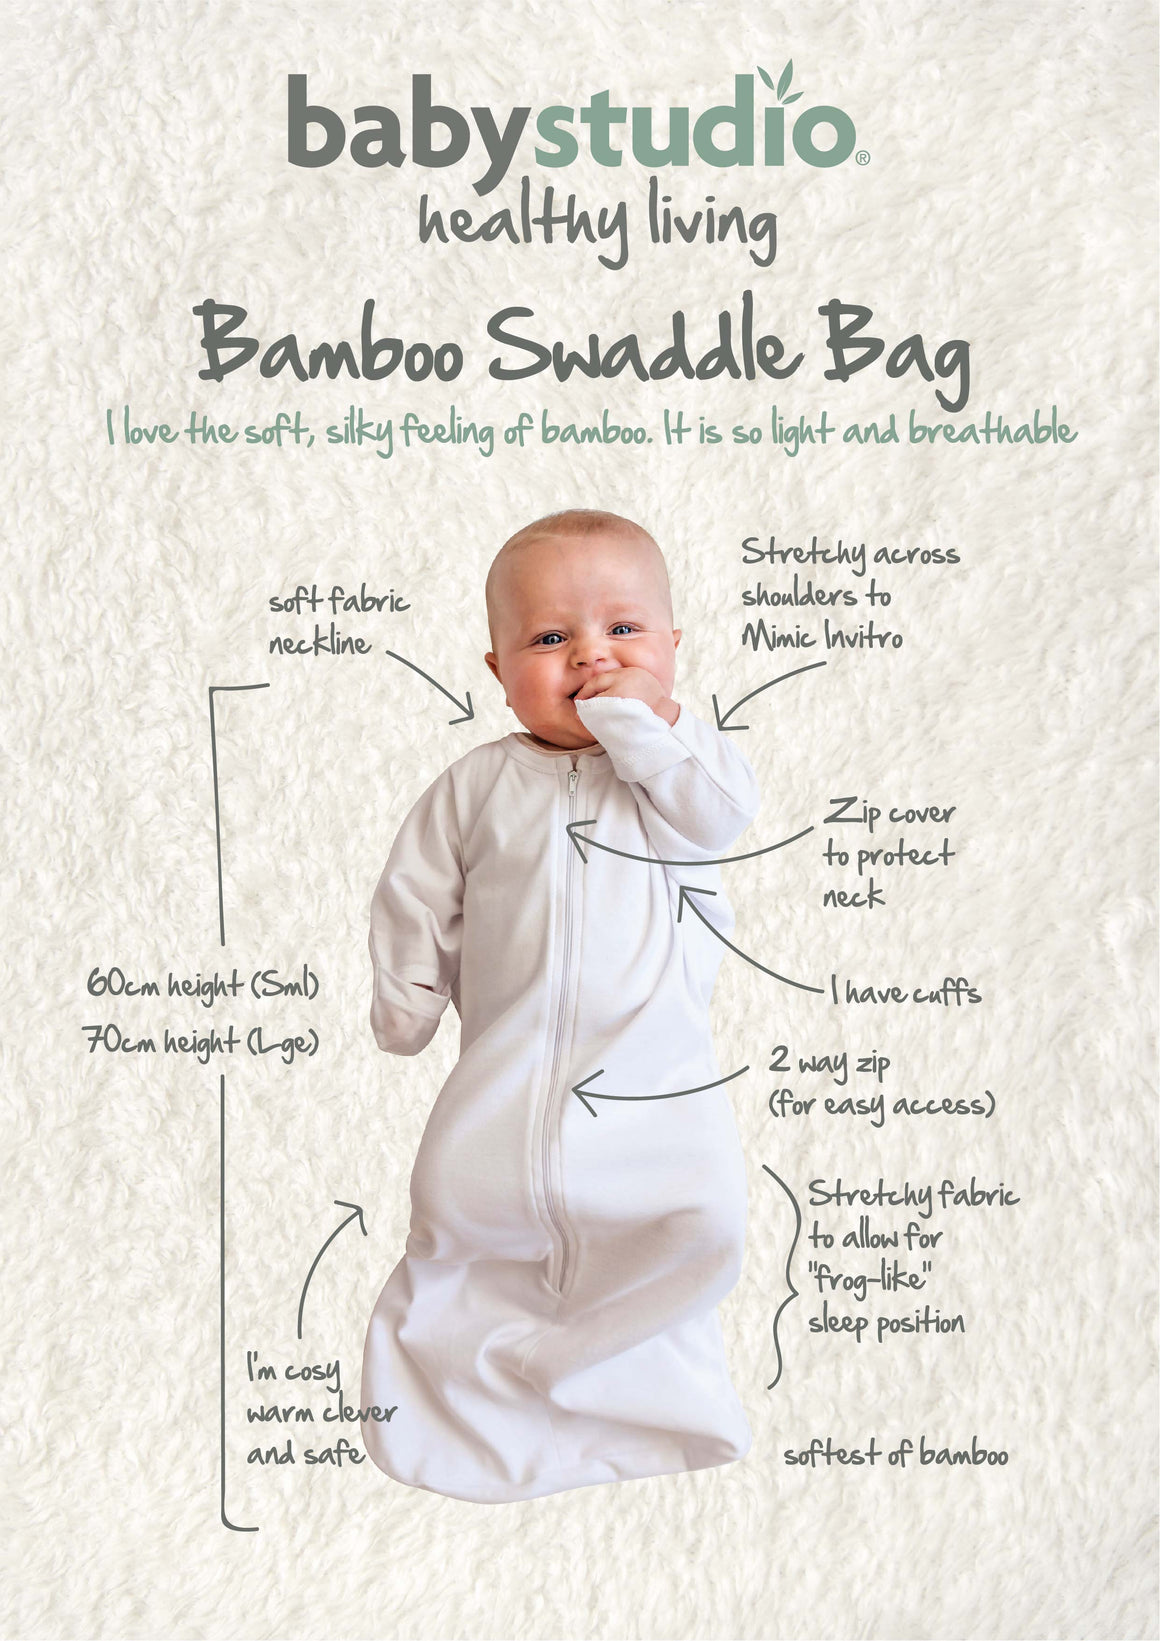 3-9M/00 ALL IN ONE SWADDLE BAG BAMBOO 0.5 TOG  - NAVY